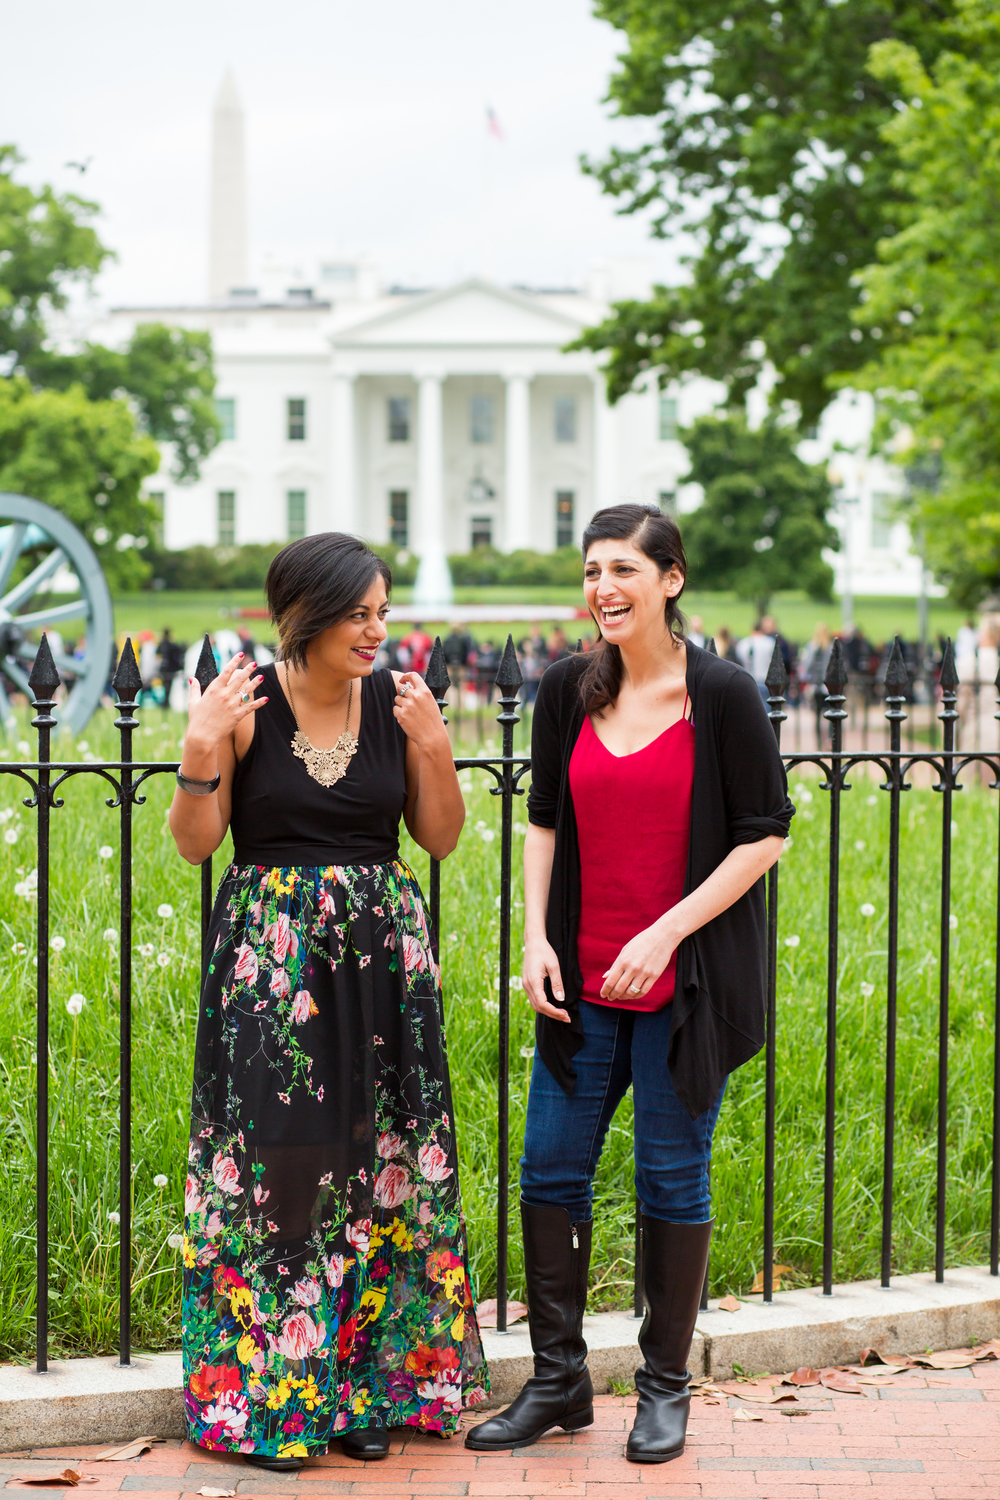 Taz & Zahra at the White House. Photo by Les Talusan.